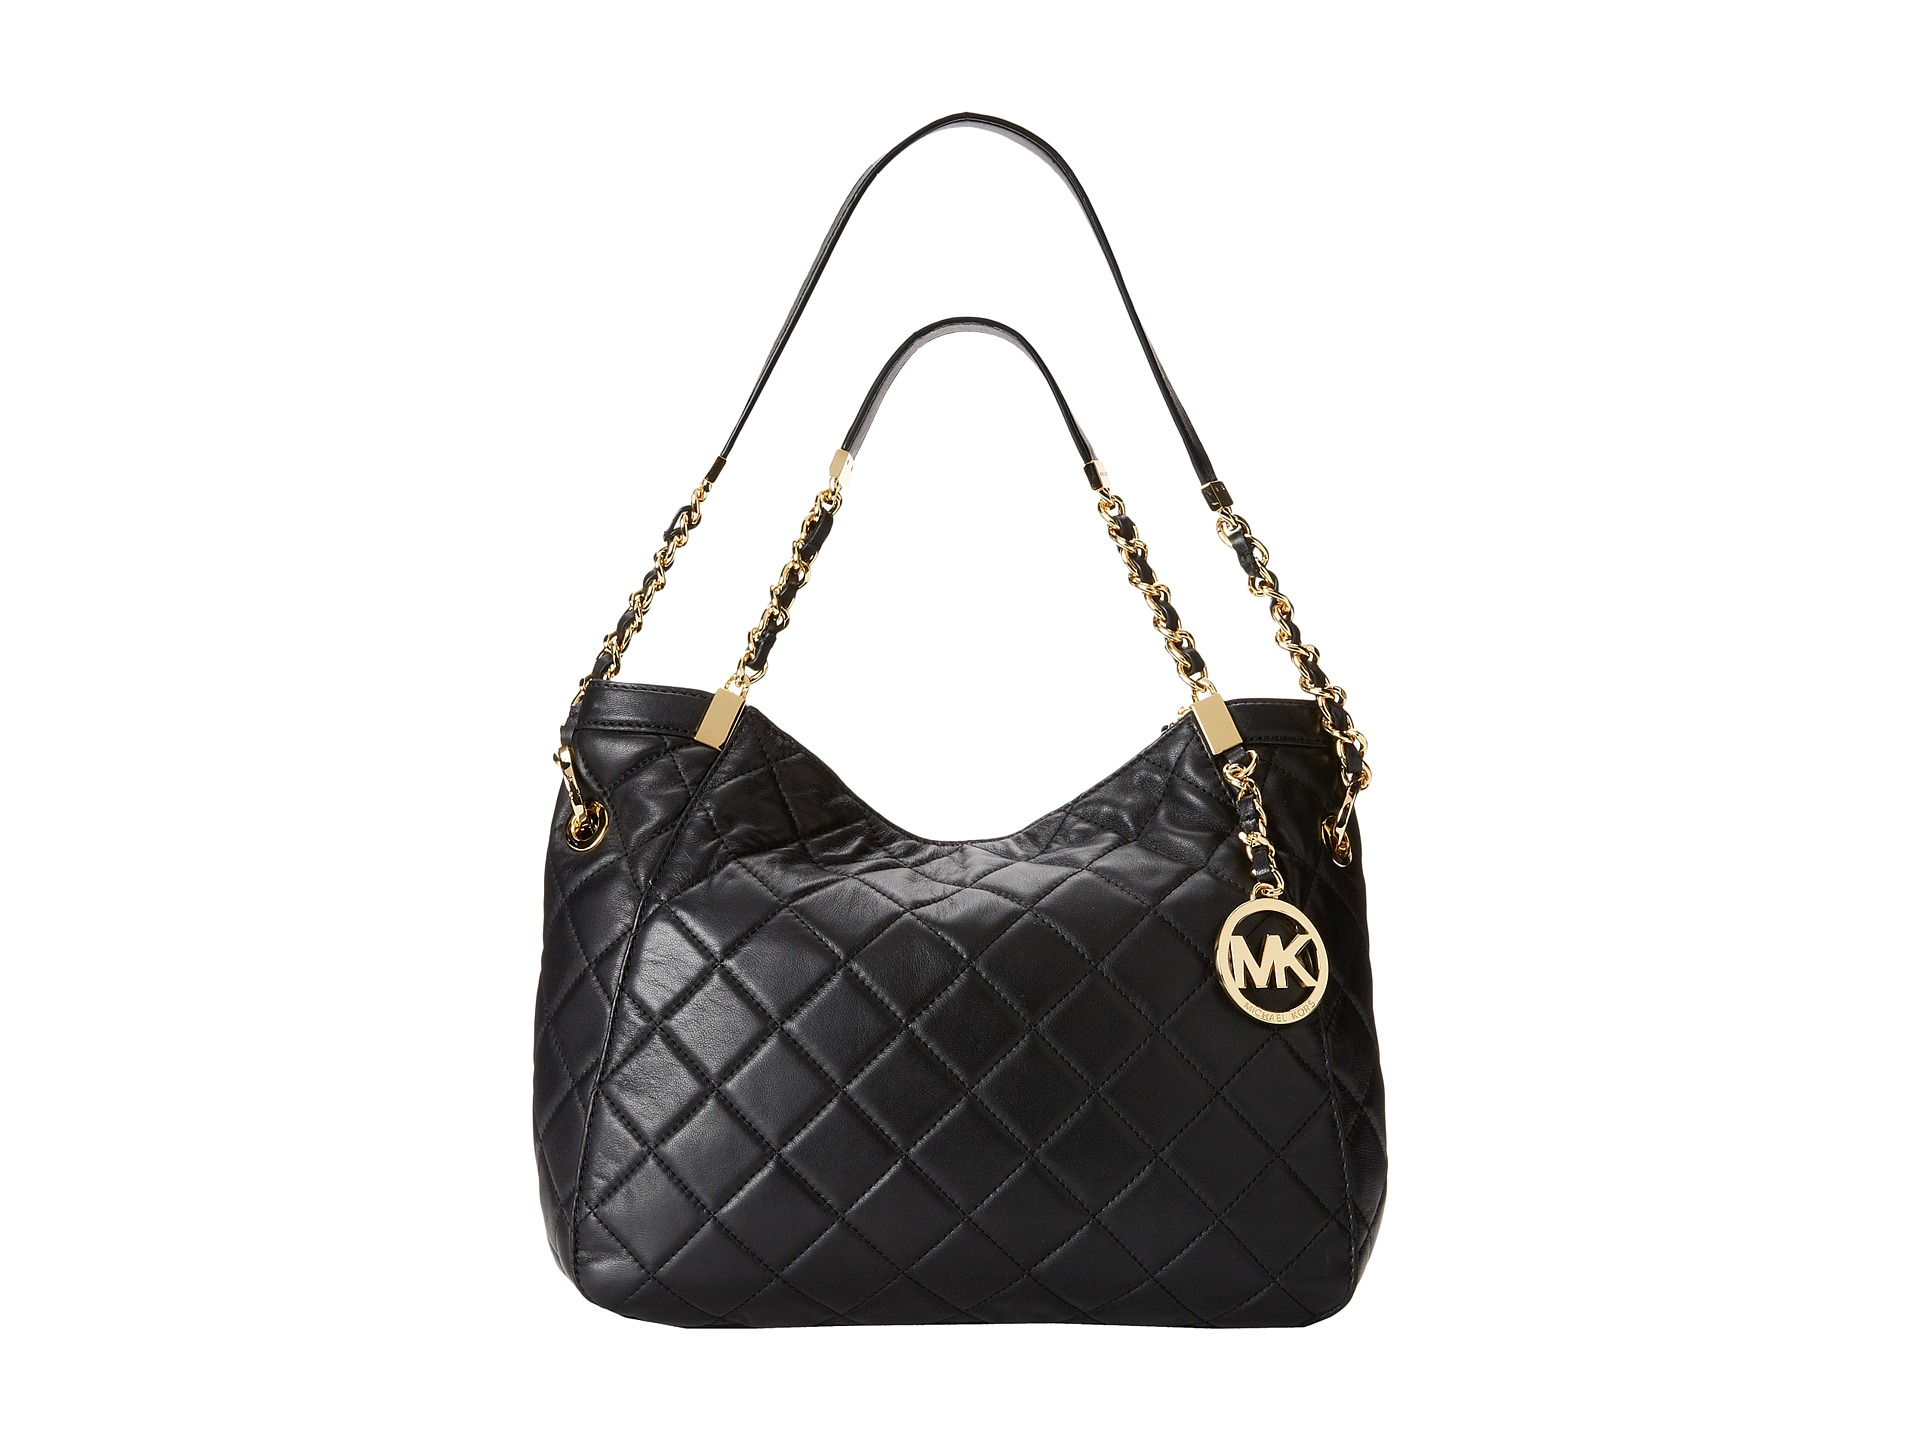 19c1c75849f1 Gallery. Previously sold at  Zappos · Women s Michael Kors Susannah ...